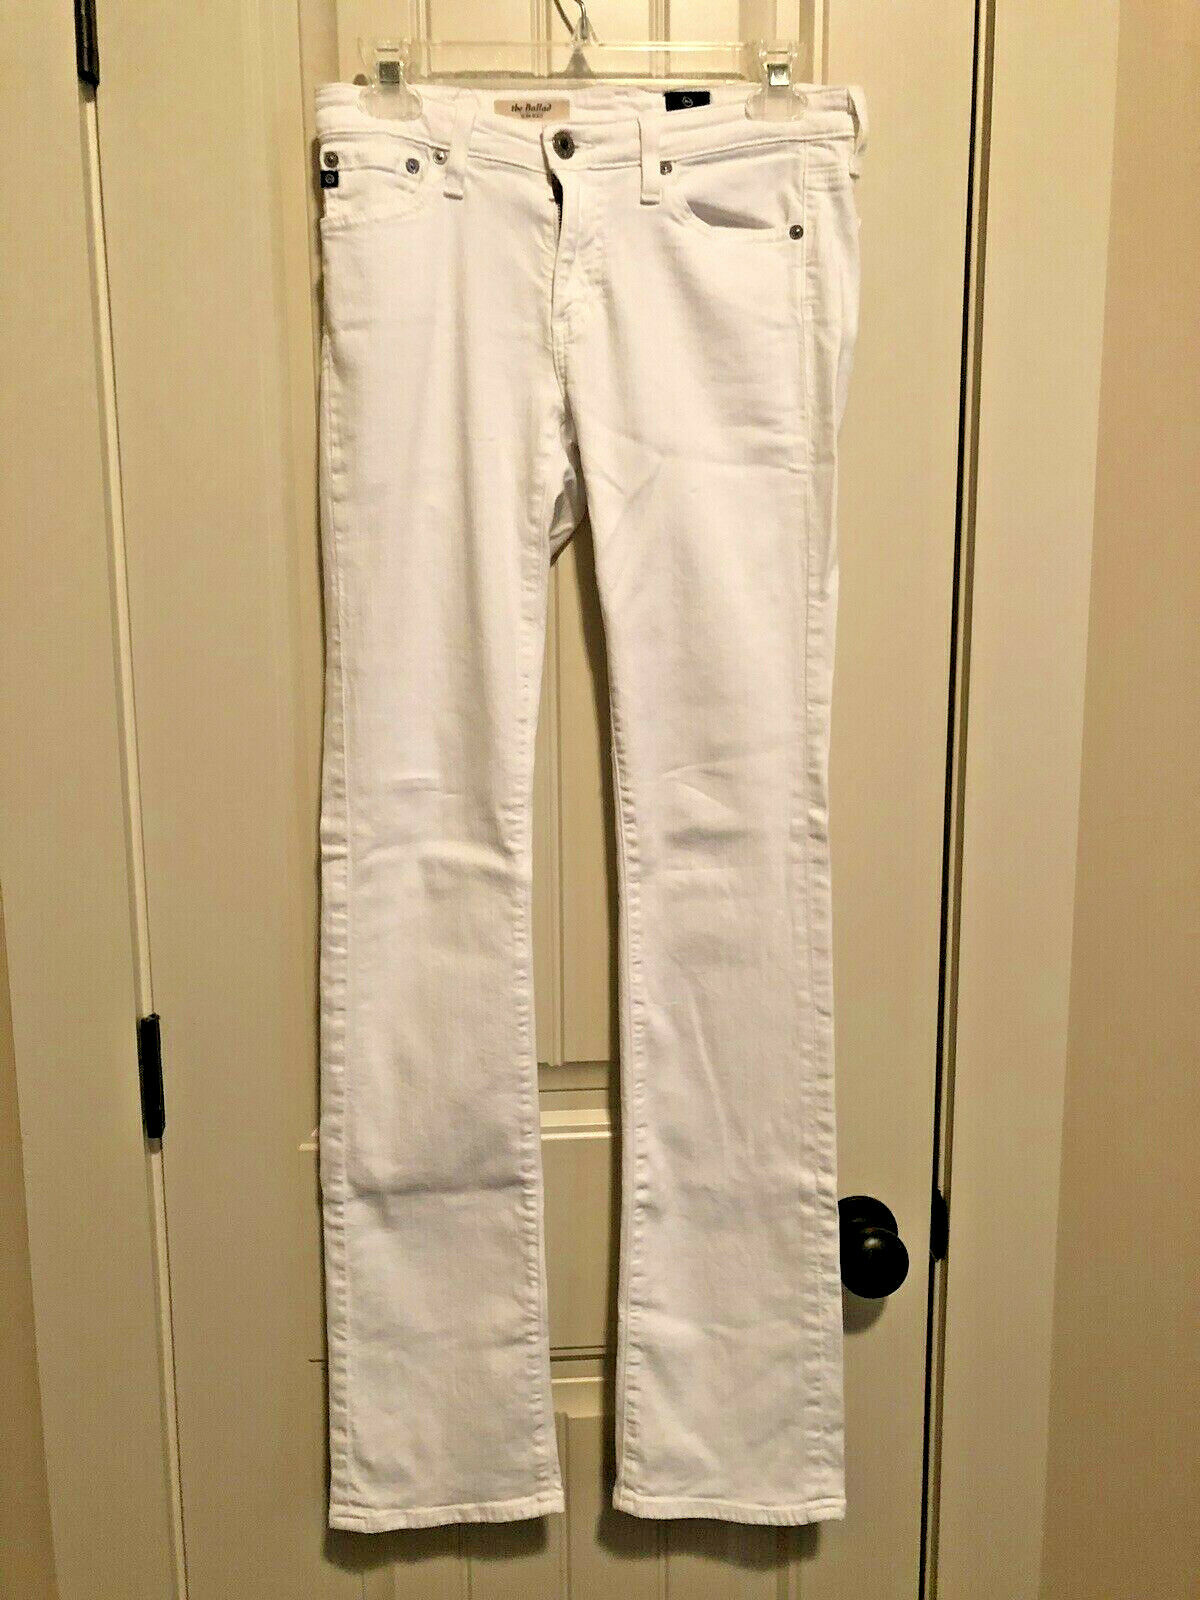 AG Adriano goldschmied  The Ballad Jeans Size 27 White Slim Boot